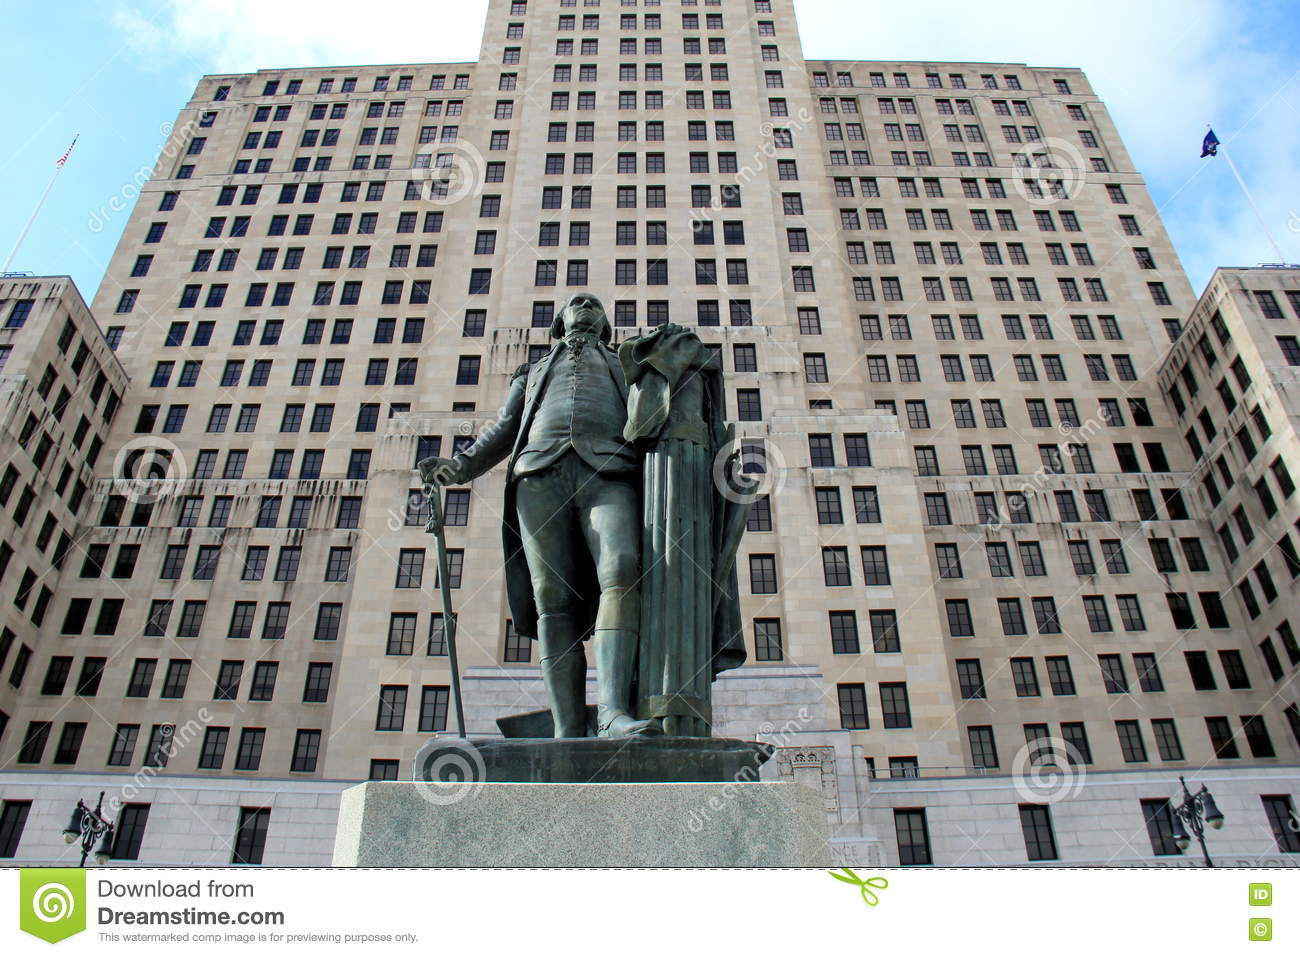 Modern Architecture Of Alfred E Smith Building With Statue In